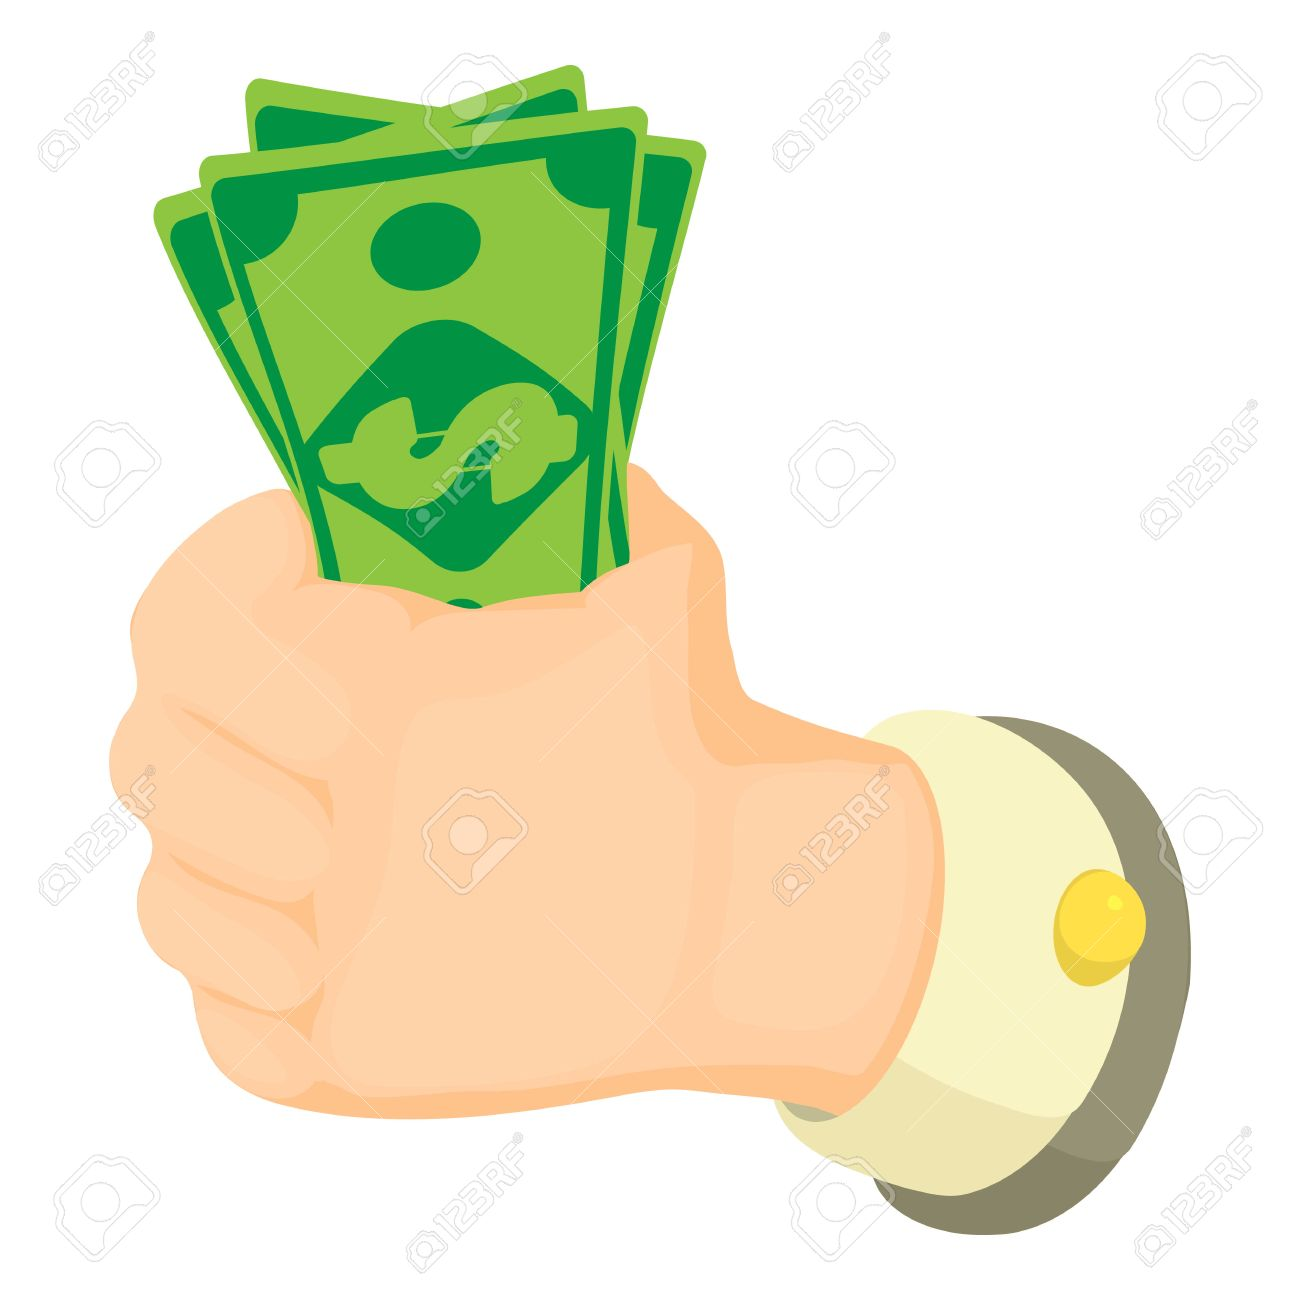 cash in hand icon cartoon illustration of cash in hand vector